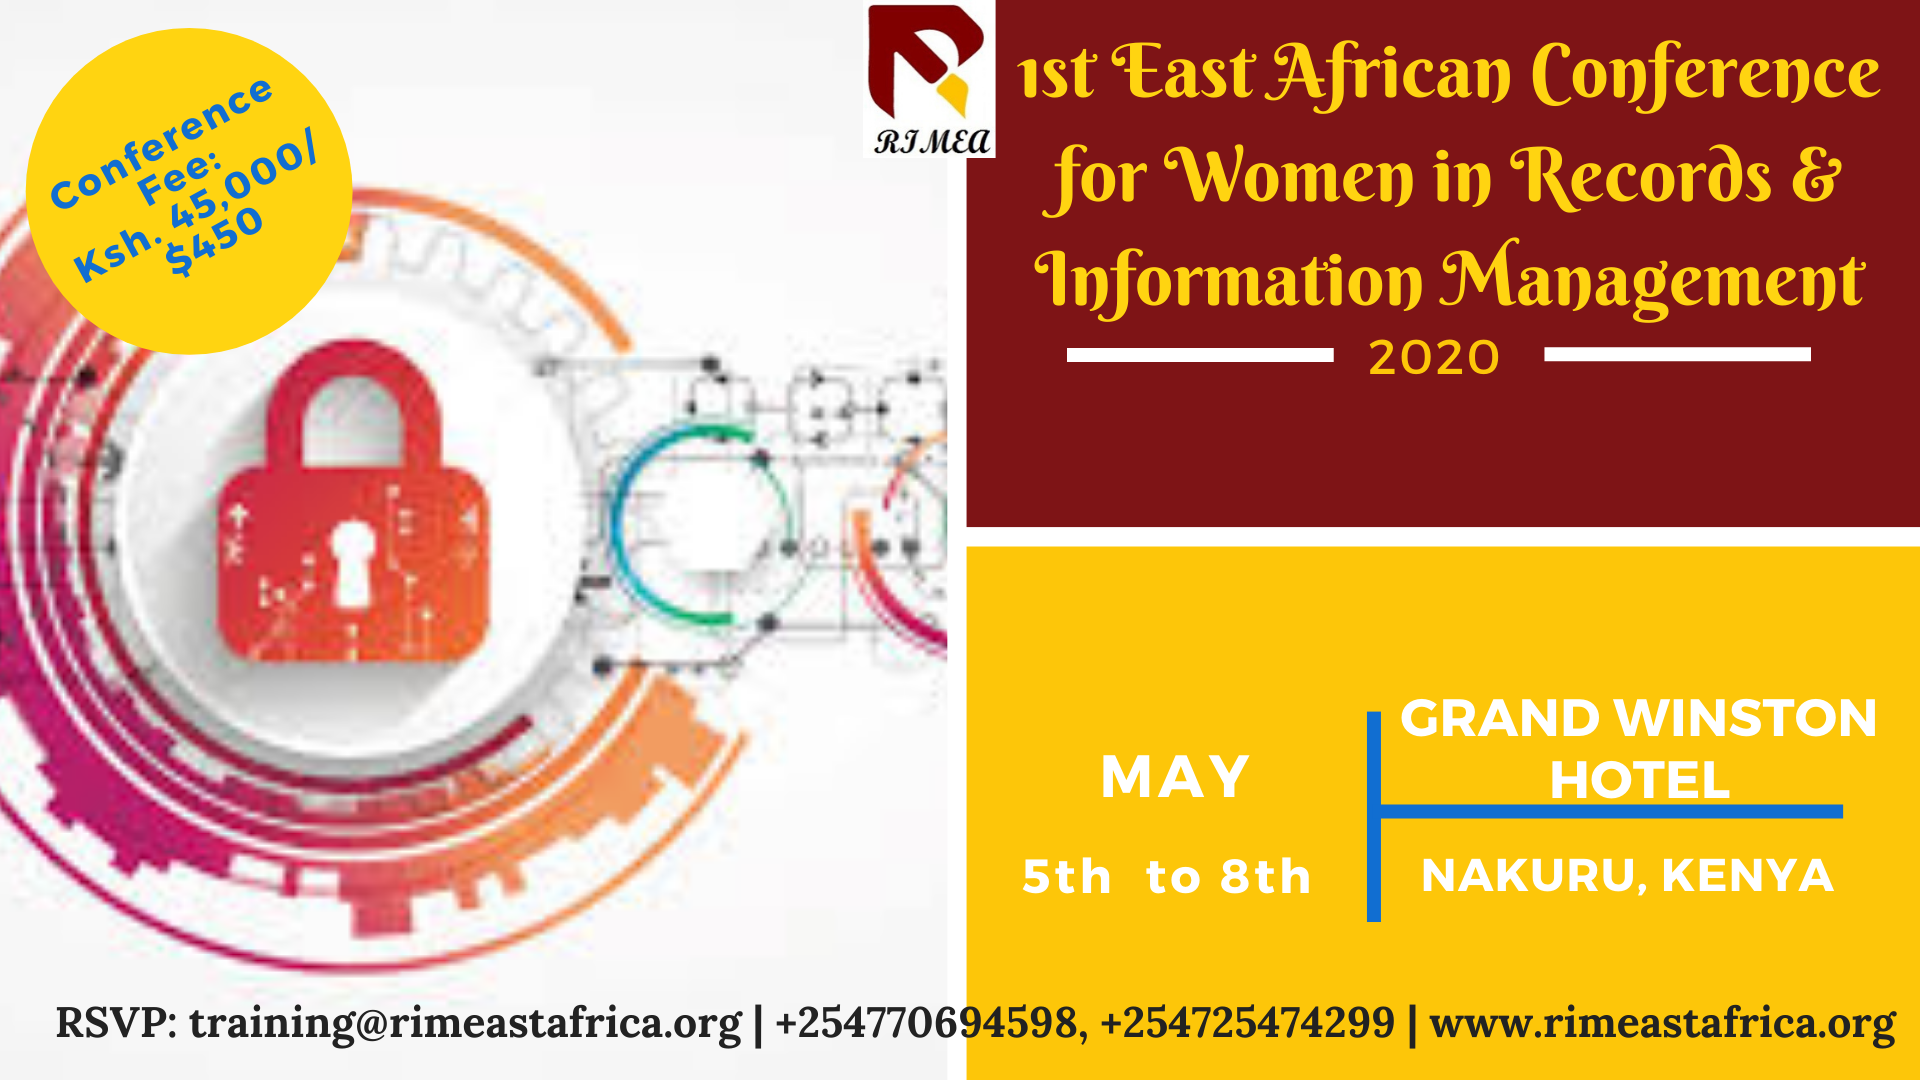 1st East African Conference for Women in Information Management